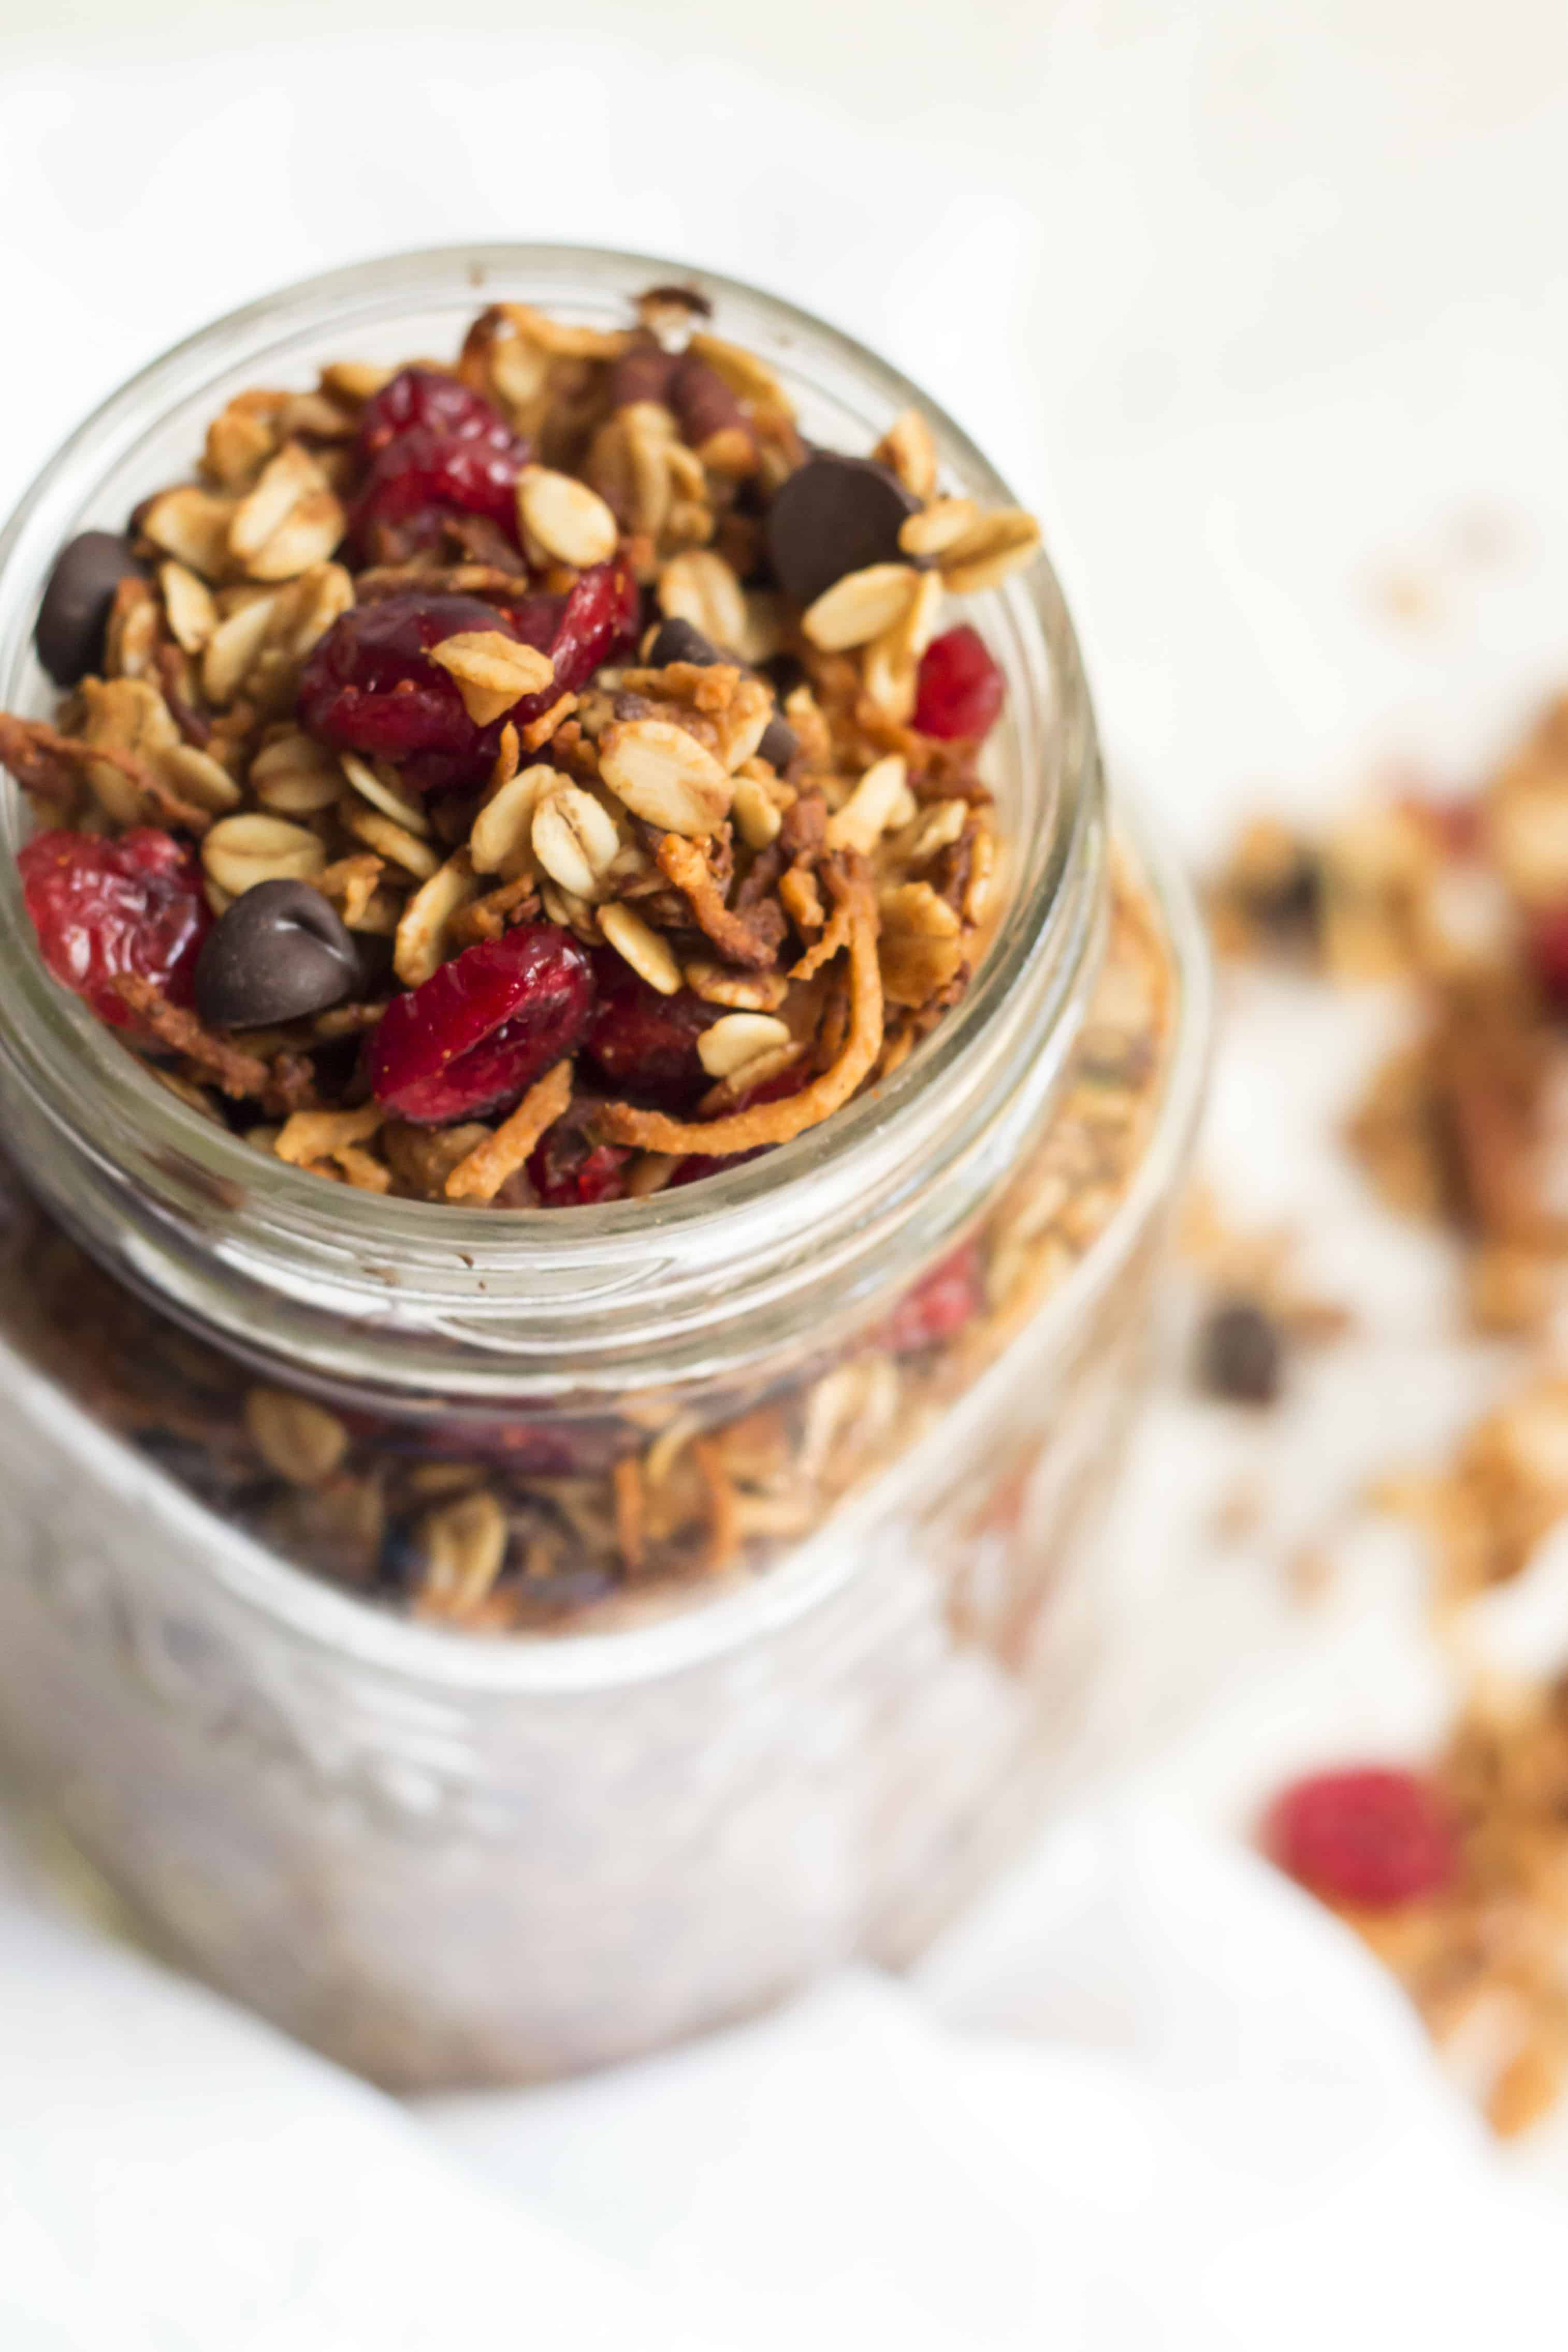 Yosemite Backpackers' Hailstorm Granola | Gluten Free with L.B.